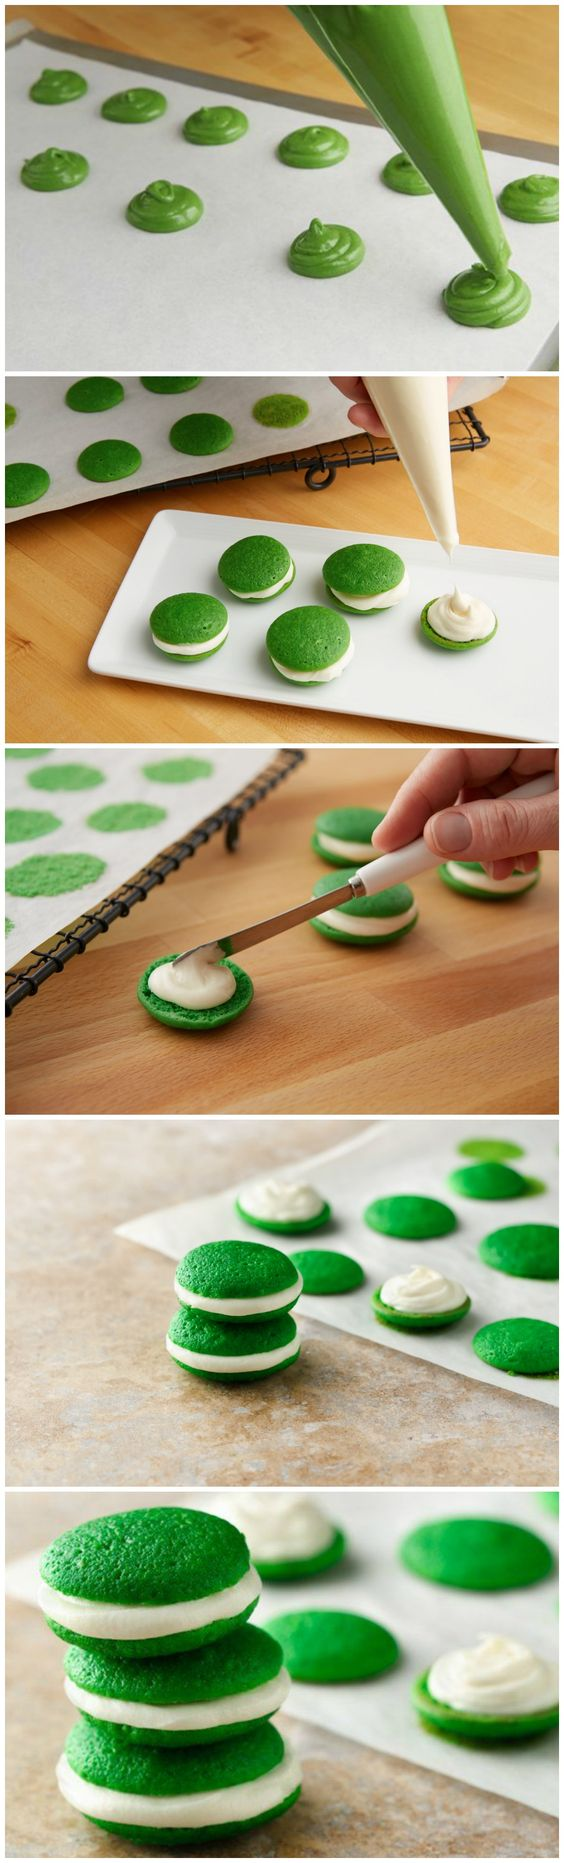 These look mysteriously easy to make...Mini Whoopie Pies!!!  So cute for St. Patrick's day!: Mini Whoopie Pie, Mini Valentine Cupcakes, Green Party Food, Mini Food, Valentine Mini Cupcakes